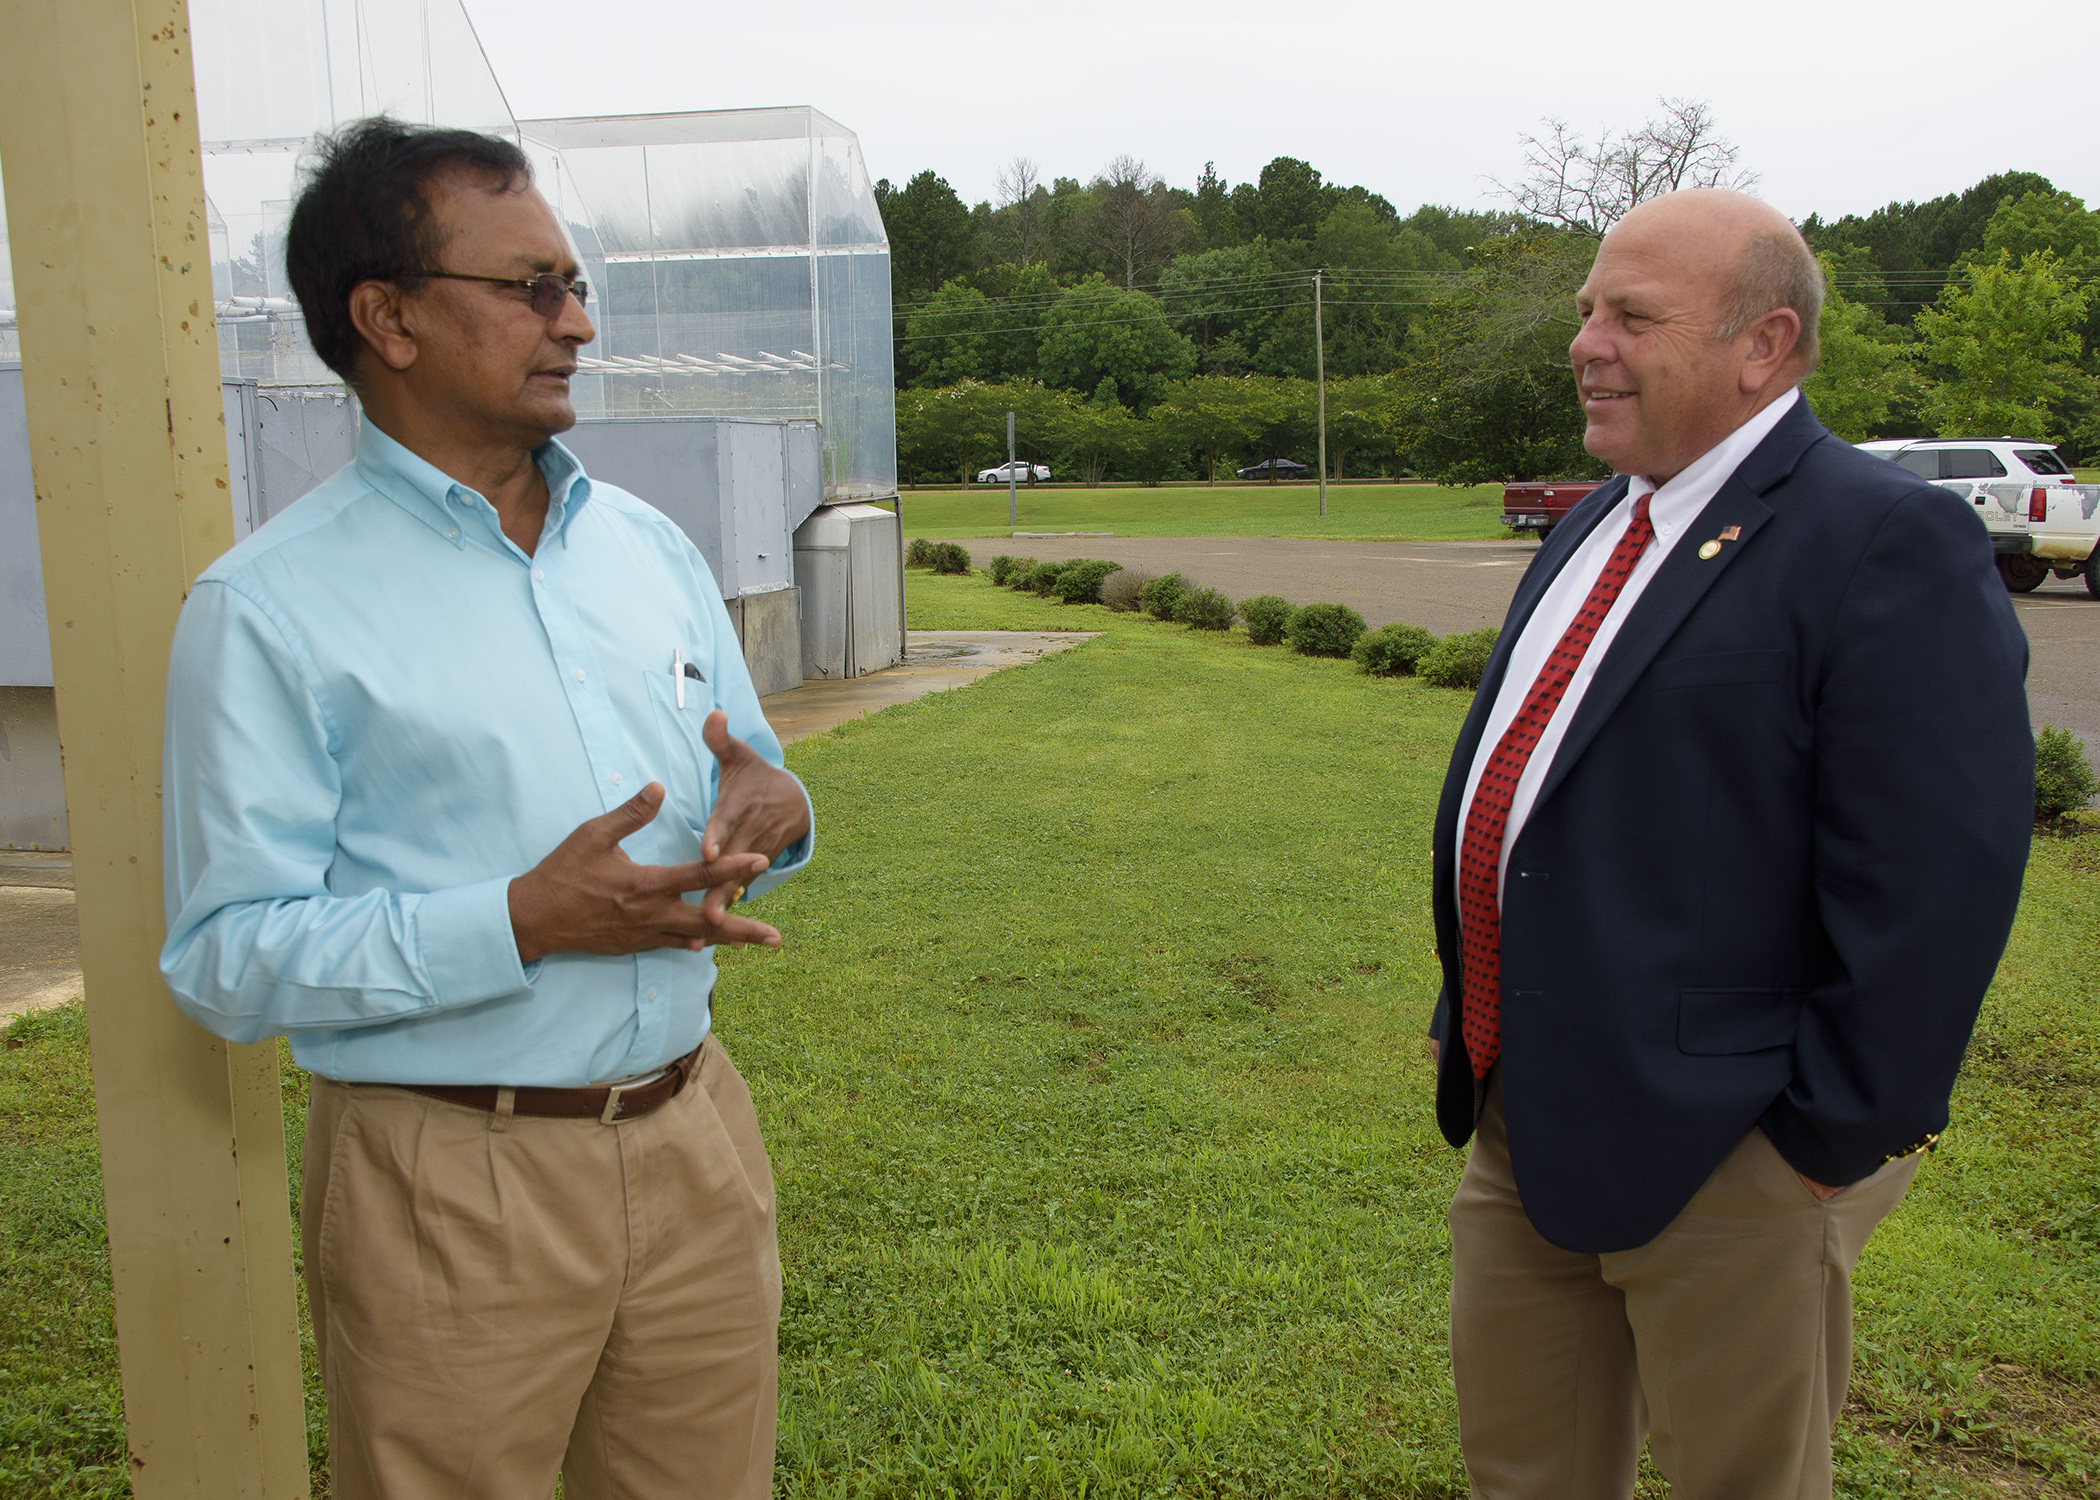 Raja Reddy, a research professor with the Mississippi Agricultural and Forestry Experiment Station, left, shows American Farm Bureau Federation President Zippy Duvall the Soil-Plant-Atmosphere-Research Facility at the R.R. Foil Plant Science Research Center in Starkville, Mississippi, on June 21, 2017. (Photo by MSU Extension Service/Kevin Hudson)